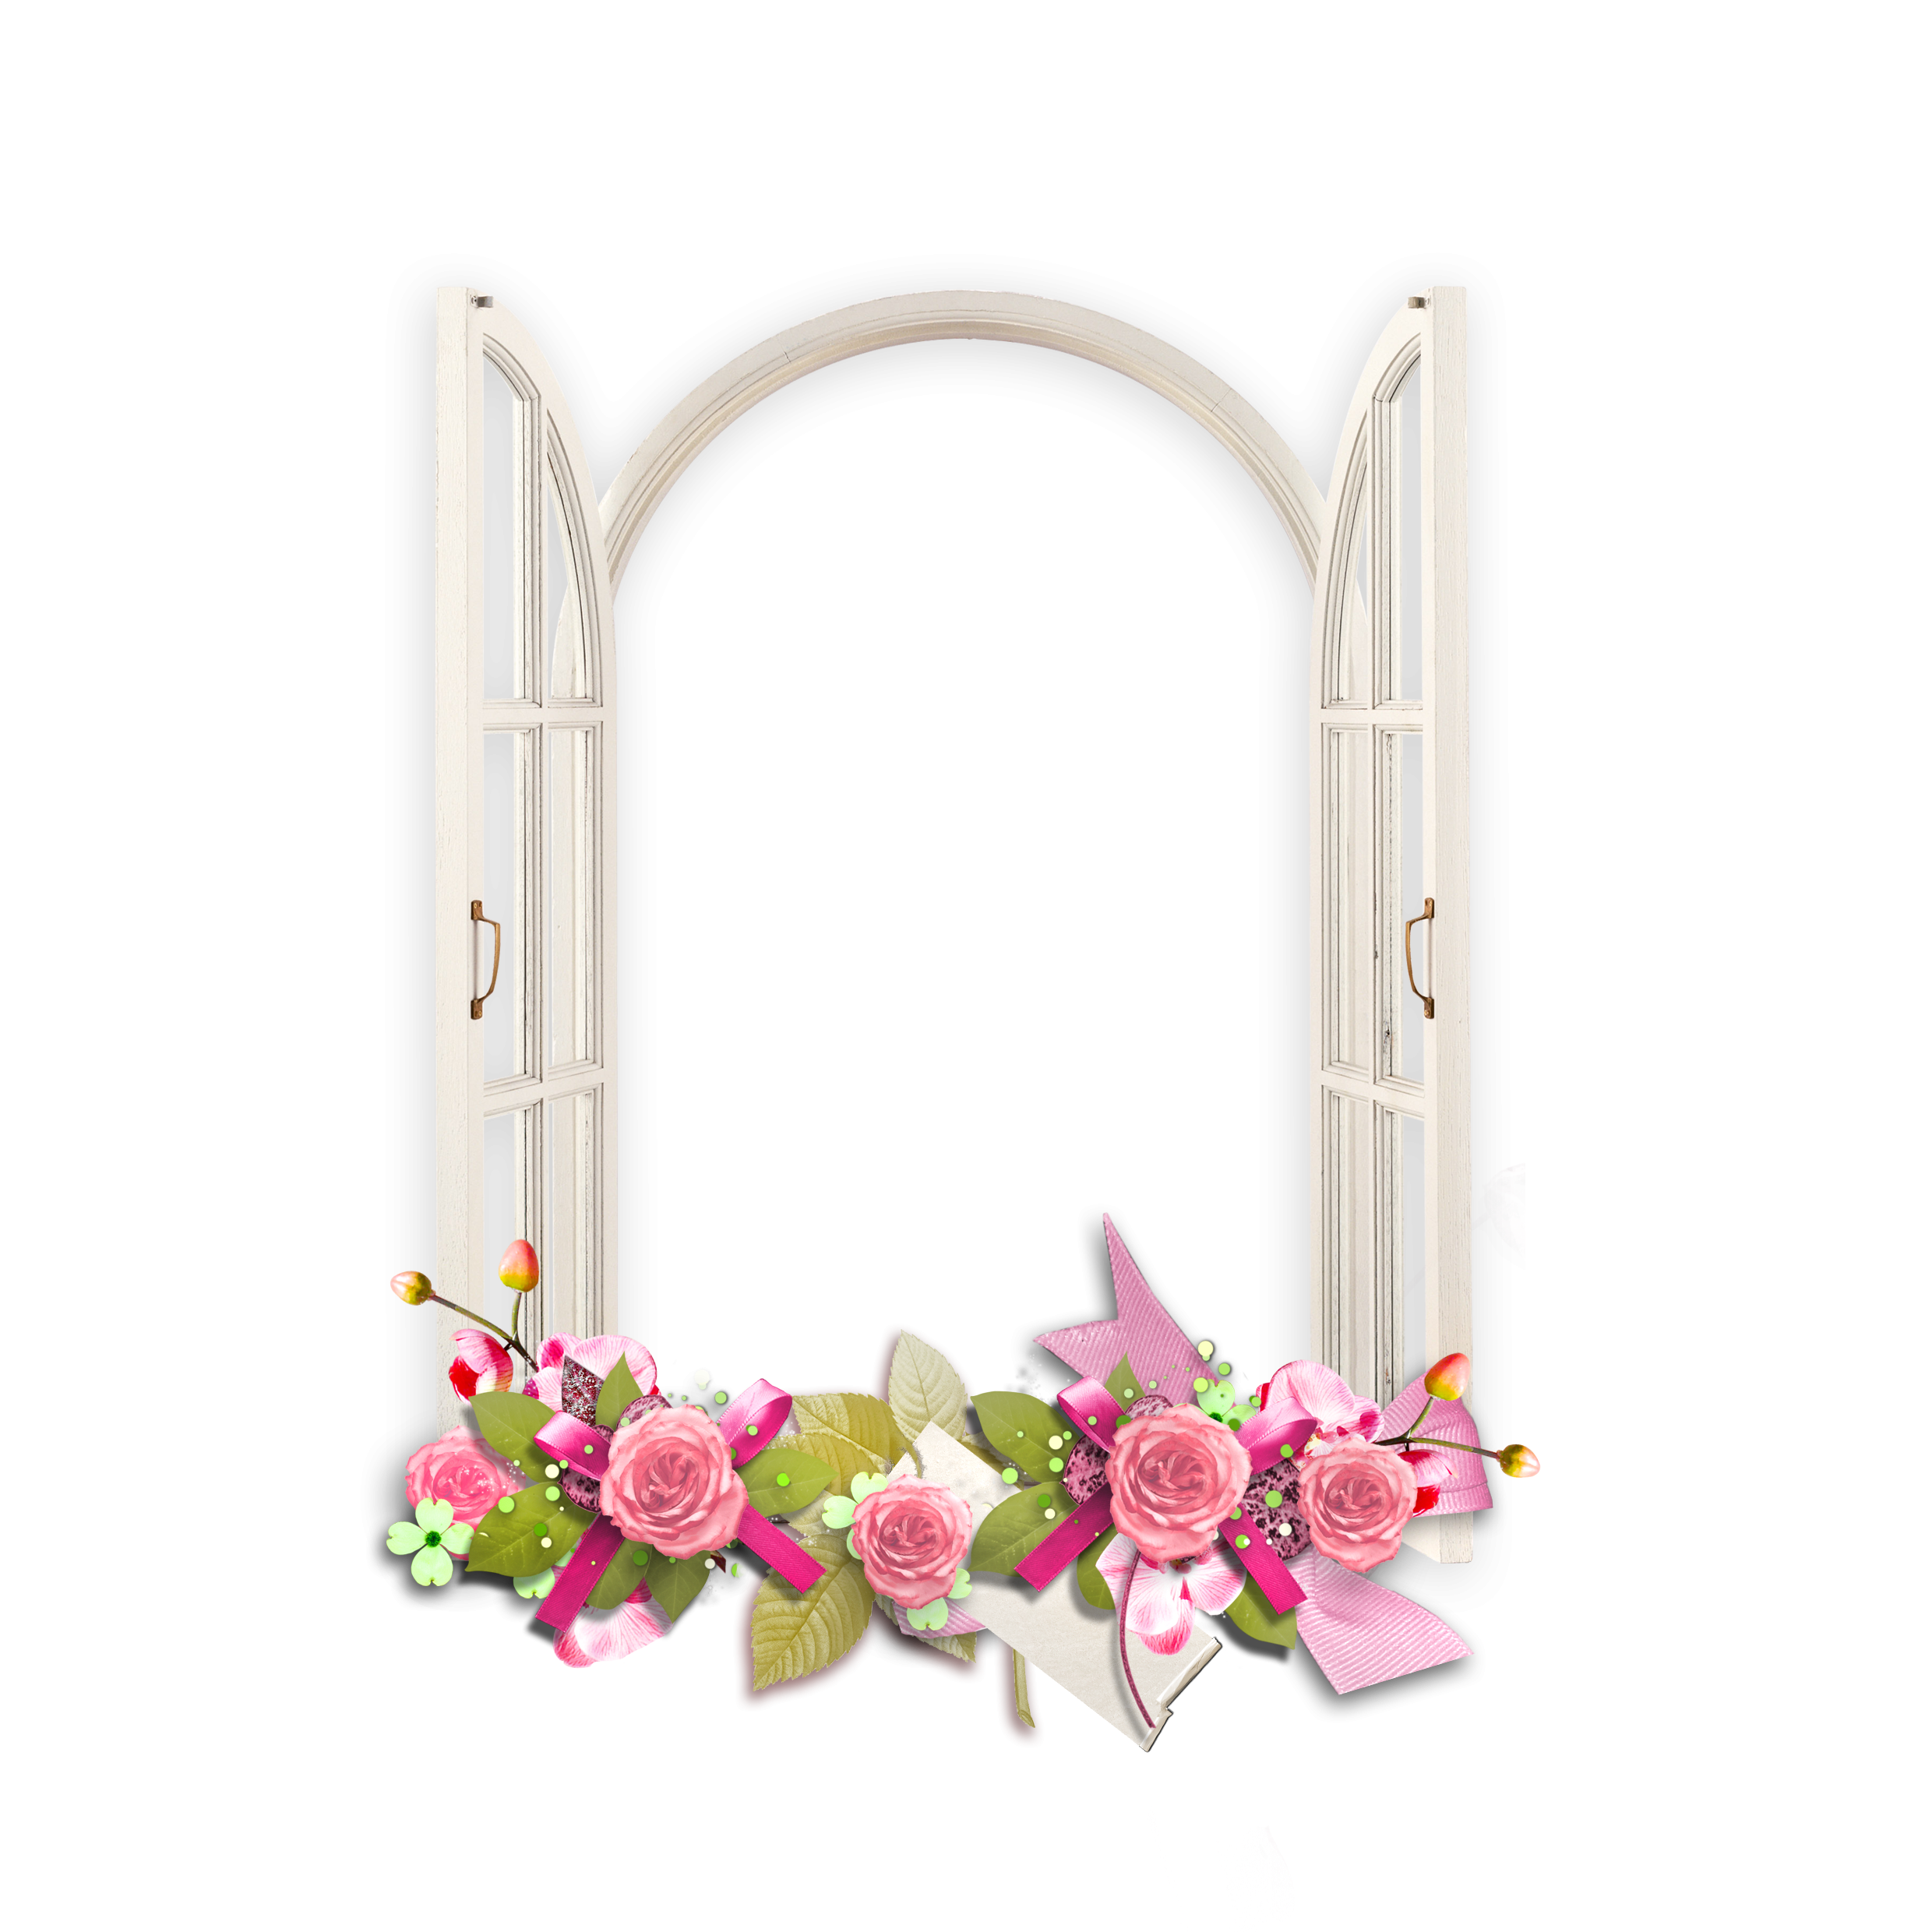 Window_with_Pink_Flowers_Transparent_Frame.png?m=1399676400.